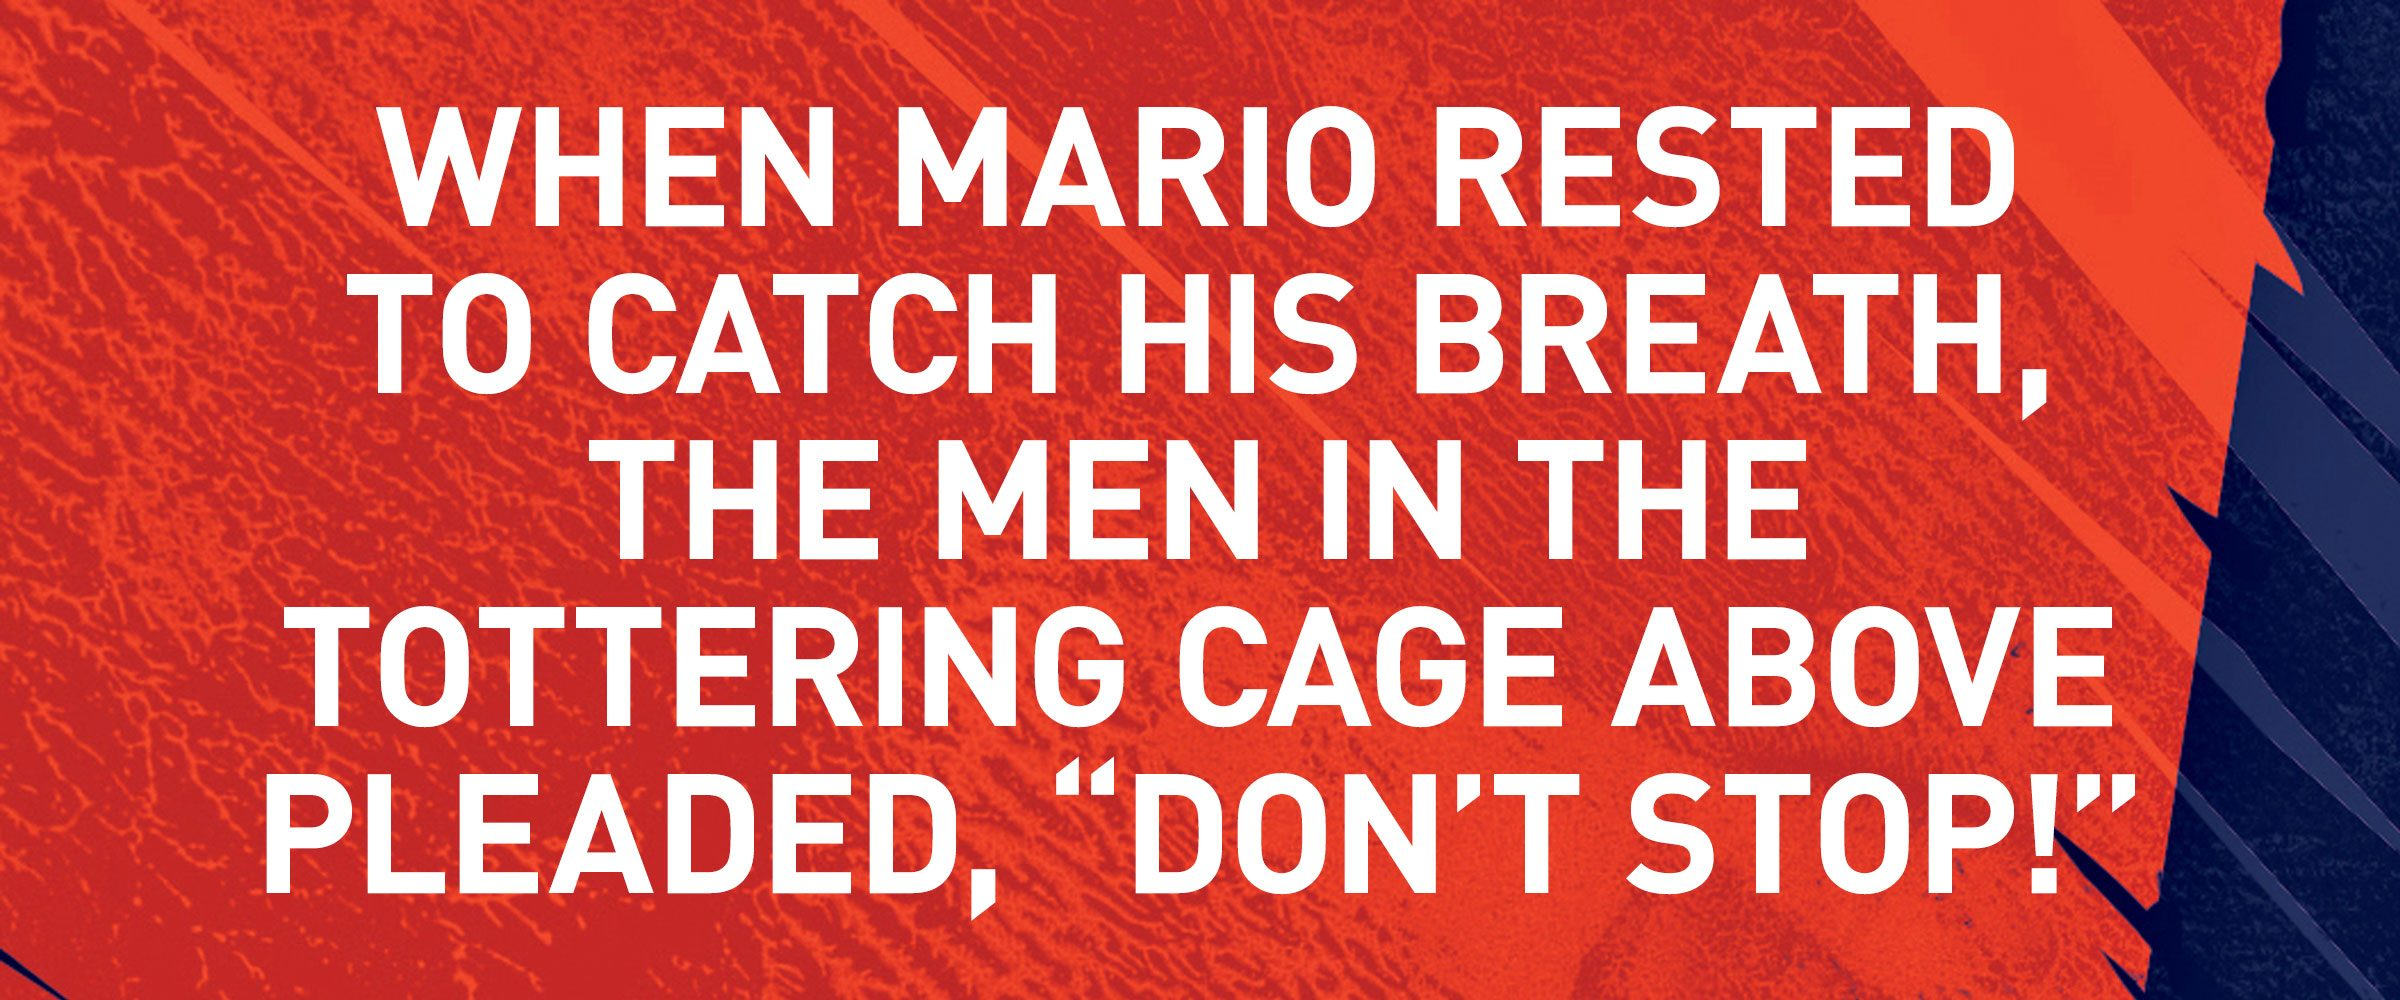 """Text: WHEN MARIO RESTED TO CATCH HIS BREATH, THE MEN IN THE TOTTERING CAGE ABOVE PLEADED, """"DON'T STOP!"""""""